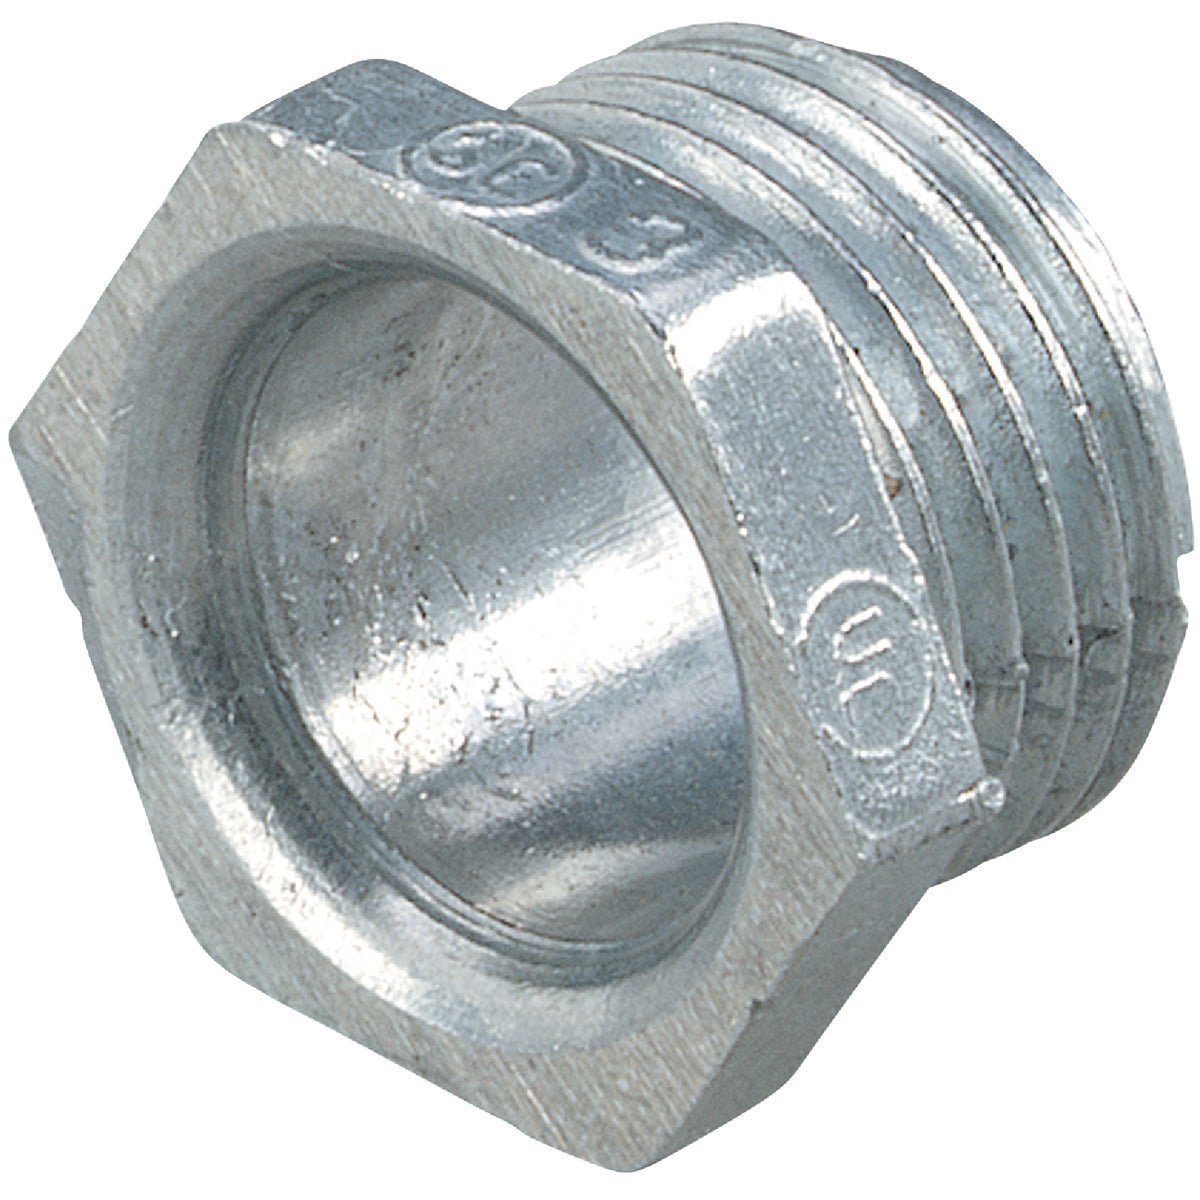 "1-1/4"" CONDUIT NIPPLE - HA2041 by Thomas & Betts"